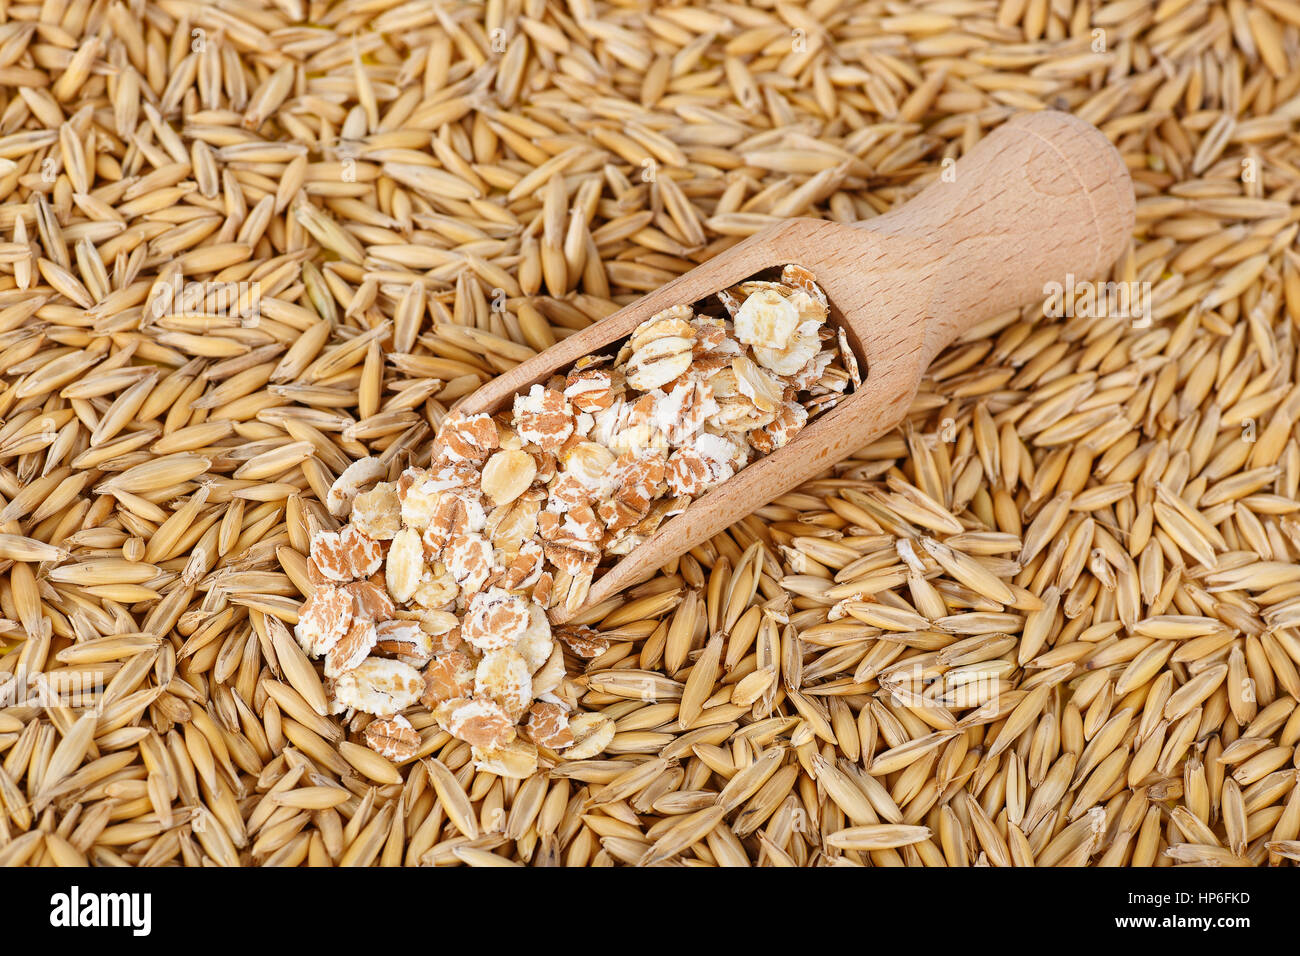 hight resolution of oat flakes in scoop and natural oat grains with husk for background closeup shot heap of organic oat grains with oatmeal in wooden spoon healthy f